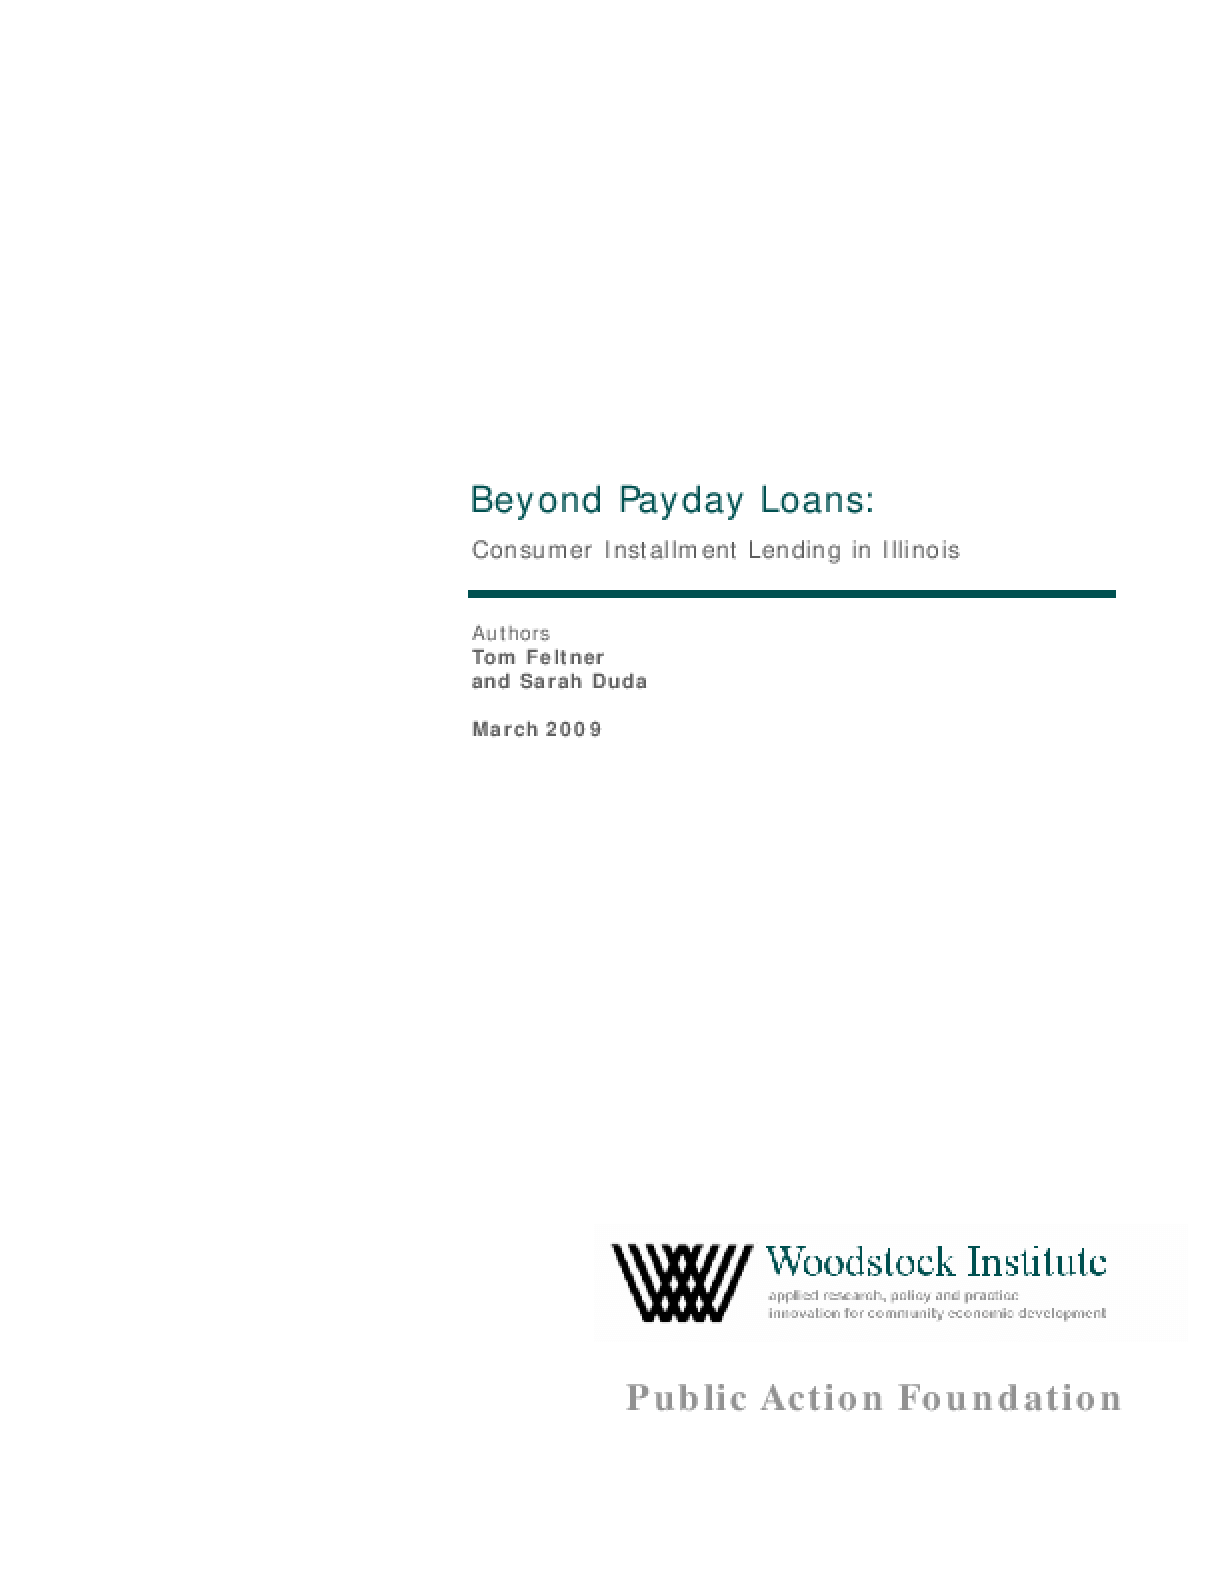 Beyond Payday Loans: Consumer Installment Lending in Illinois